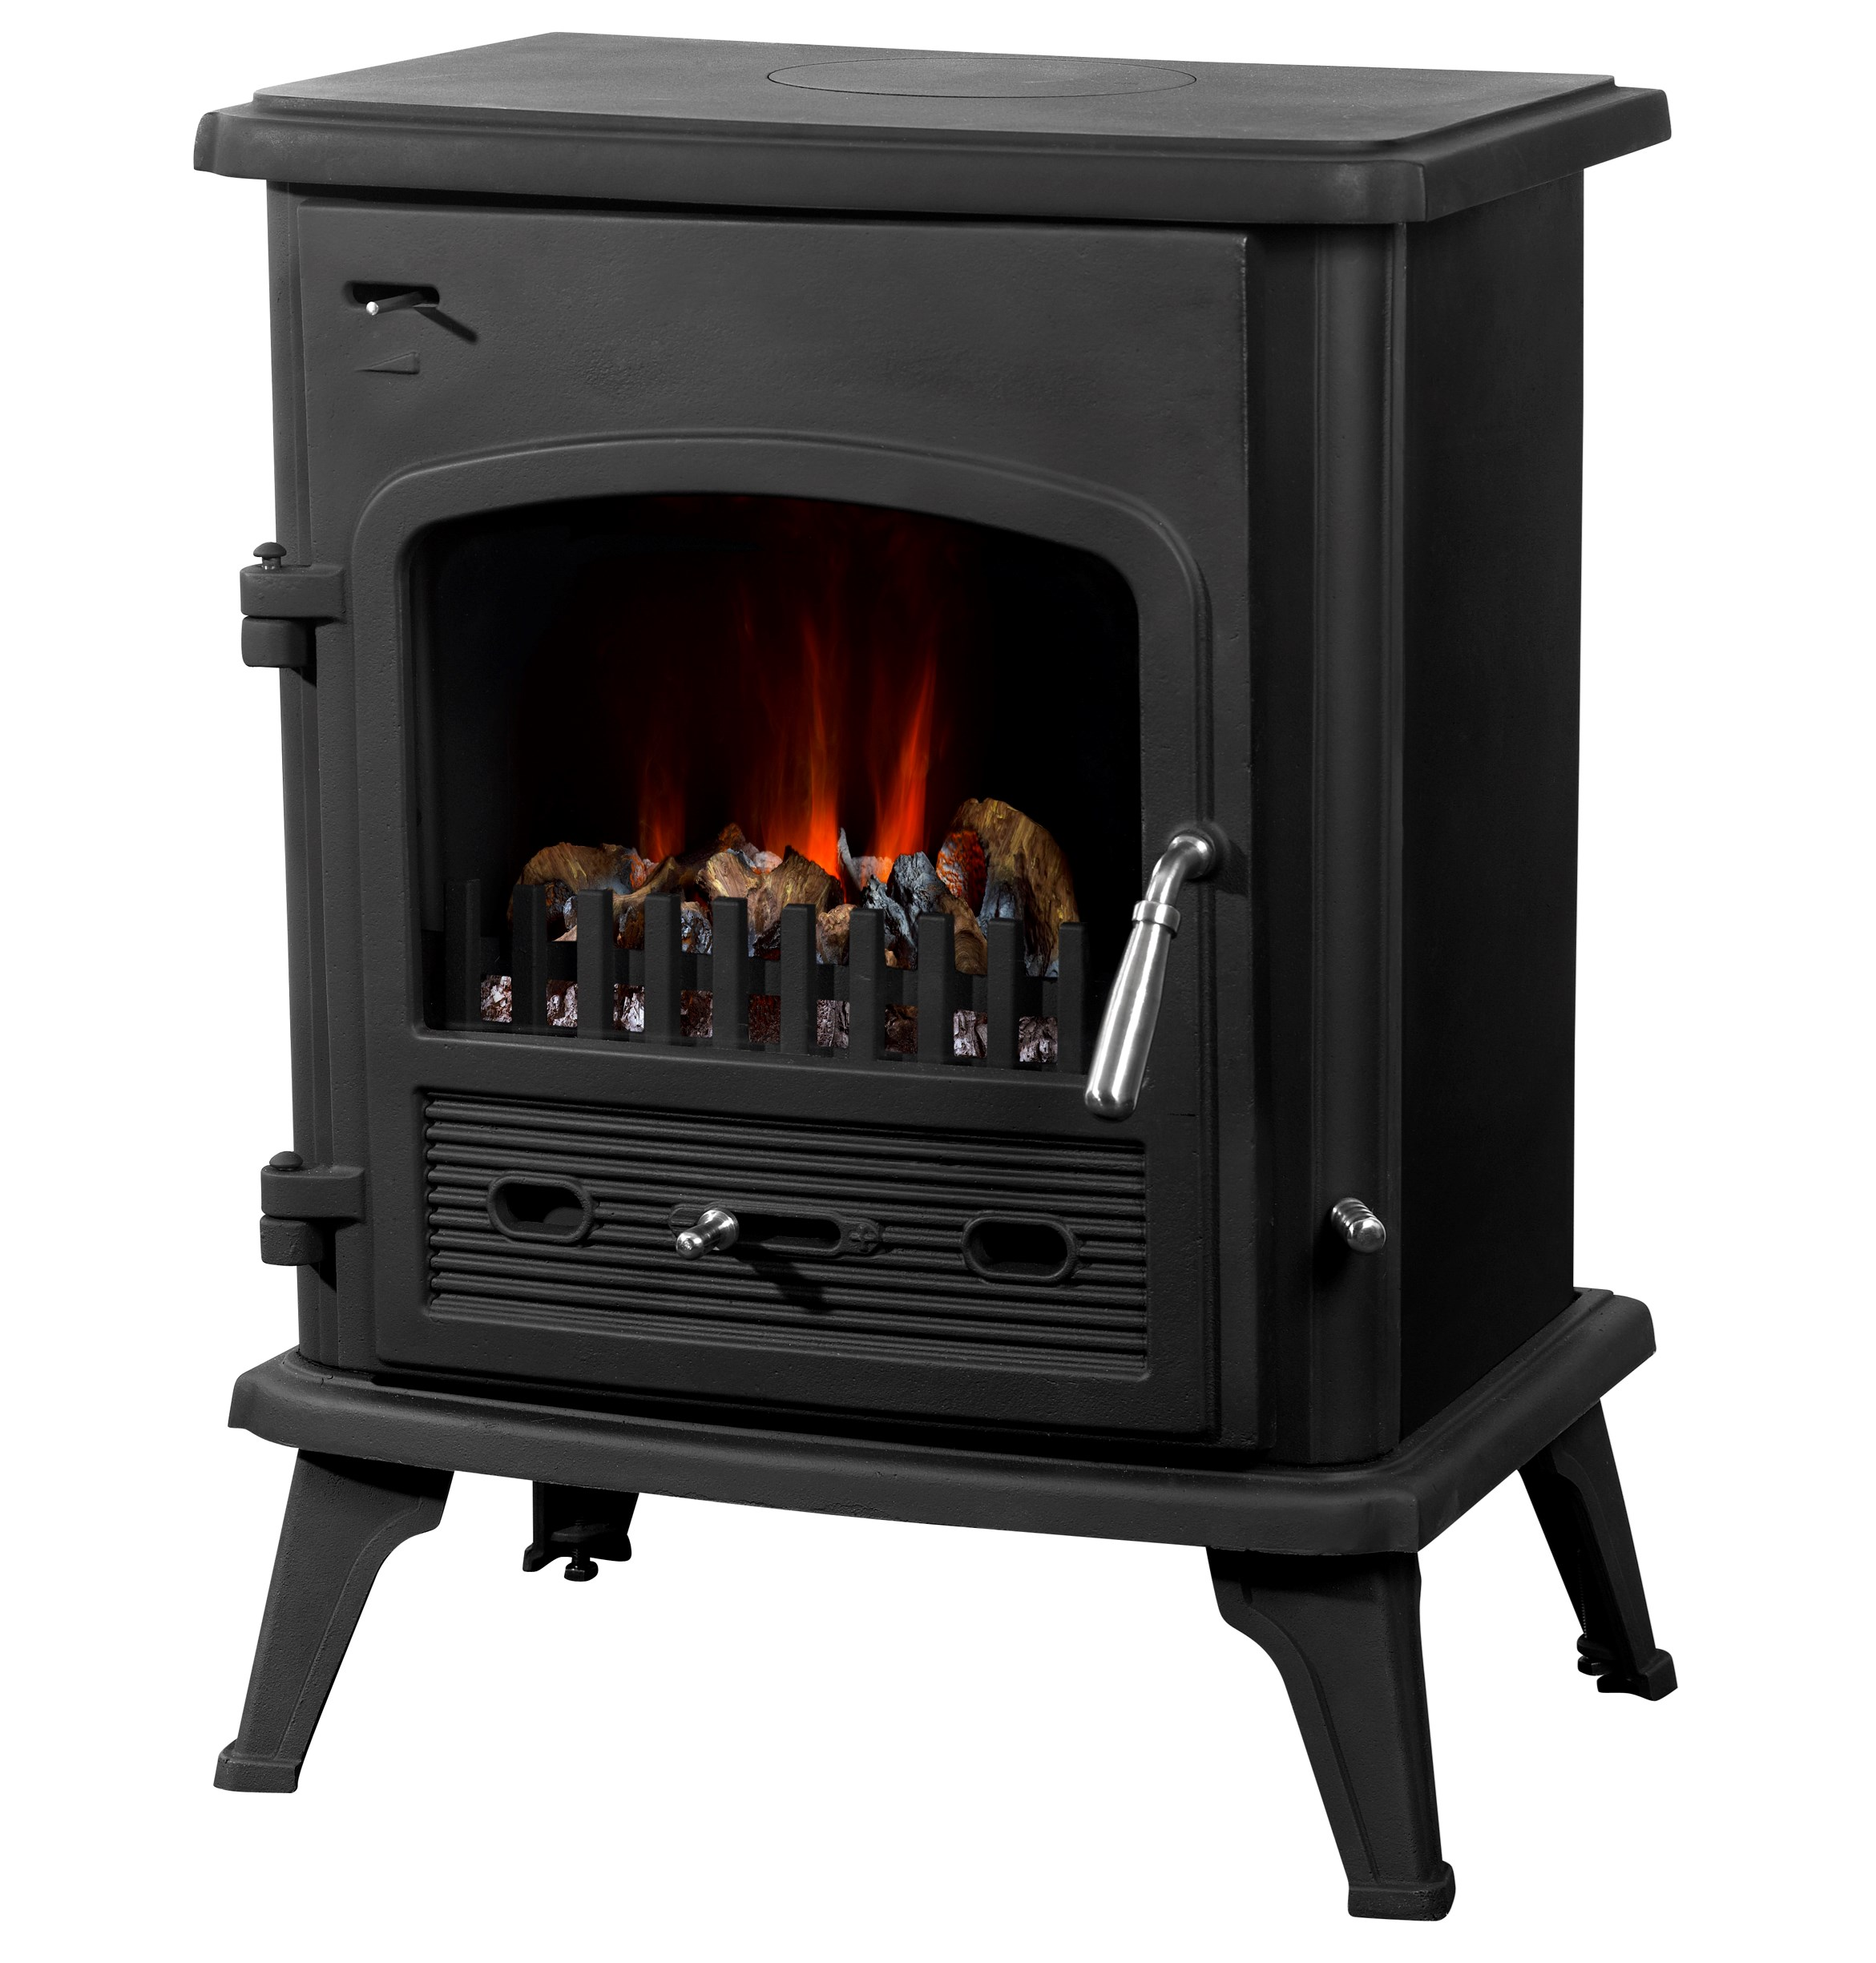 Dimplex  Boiler Stove - 8kW